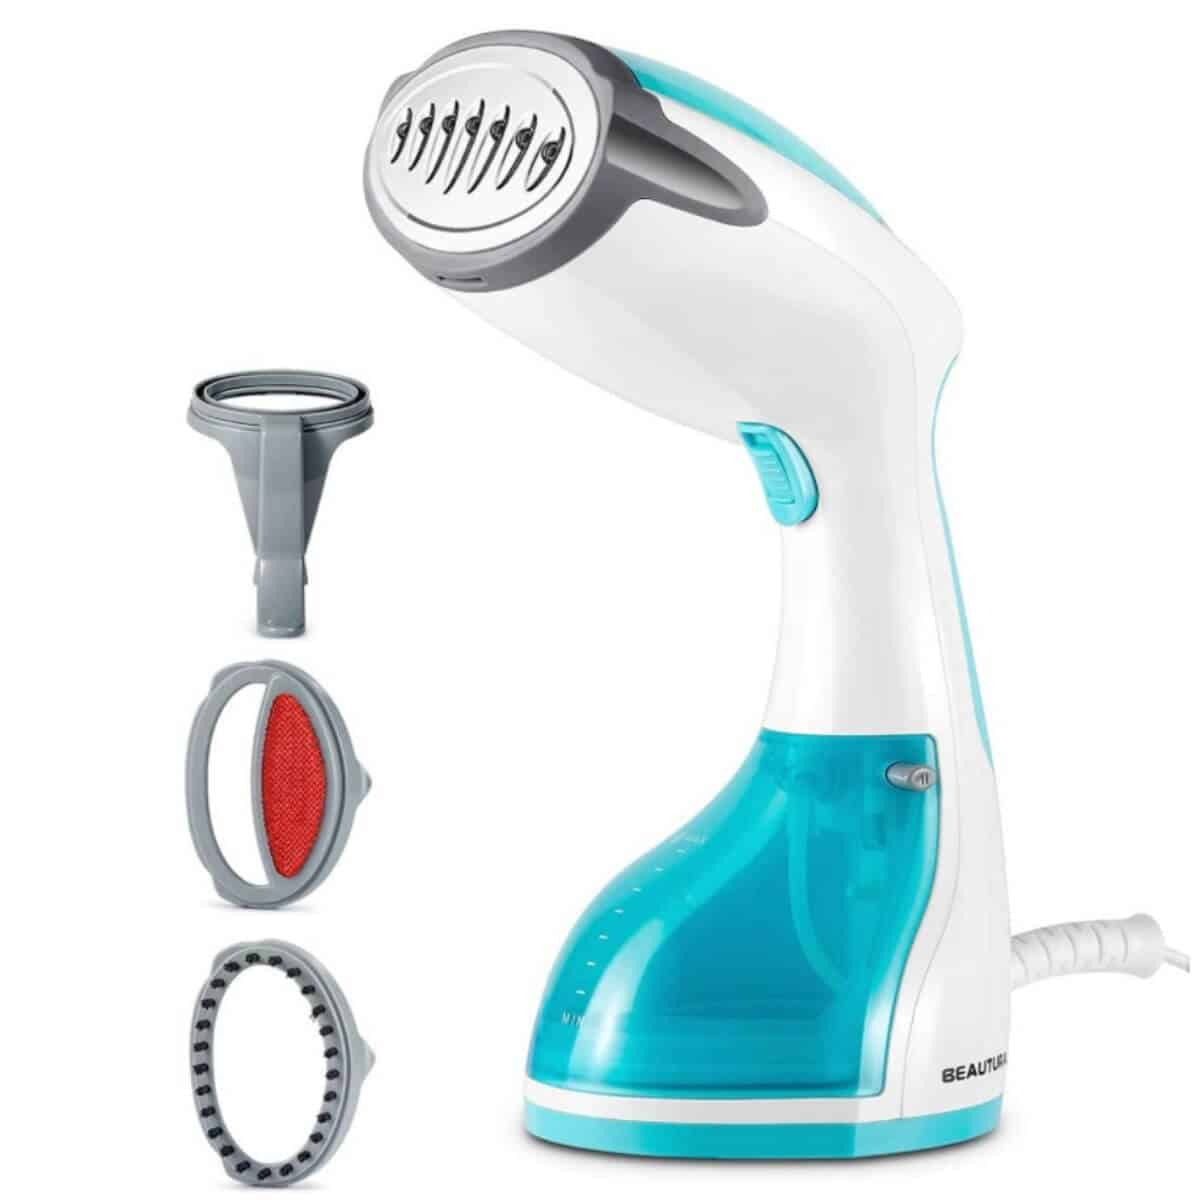 Blue and white handheld steamer.